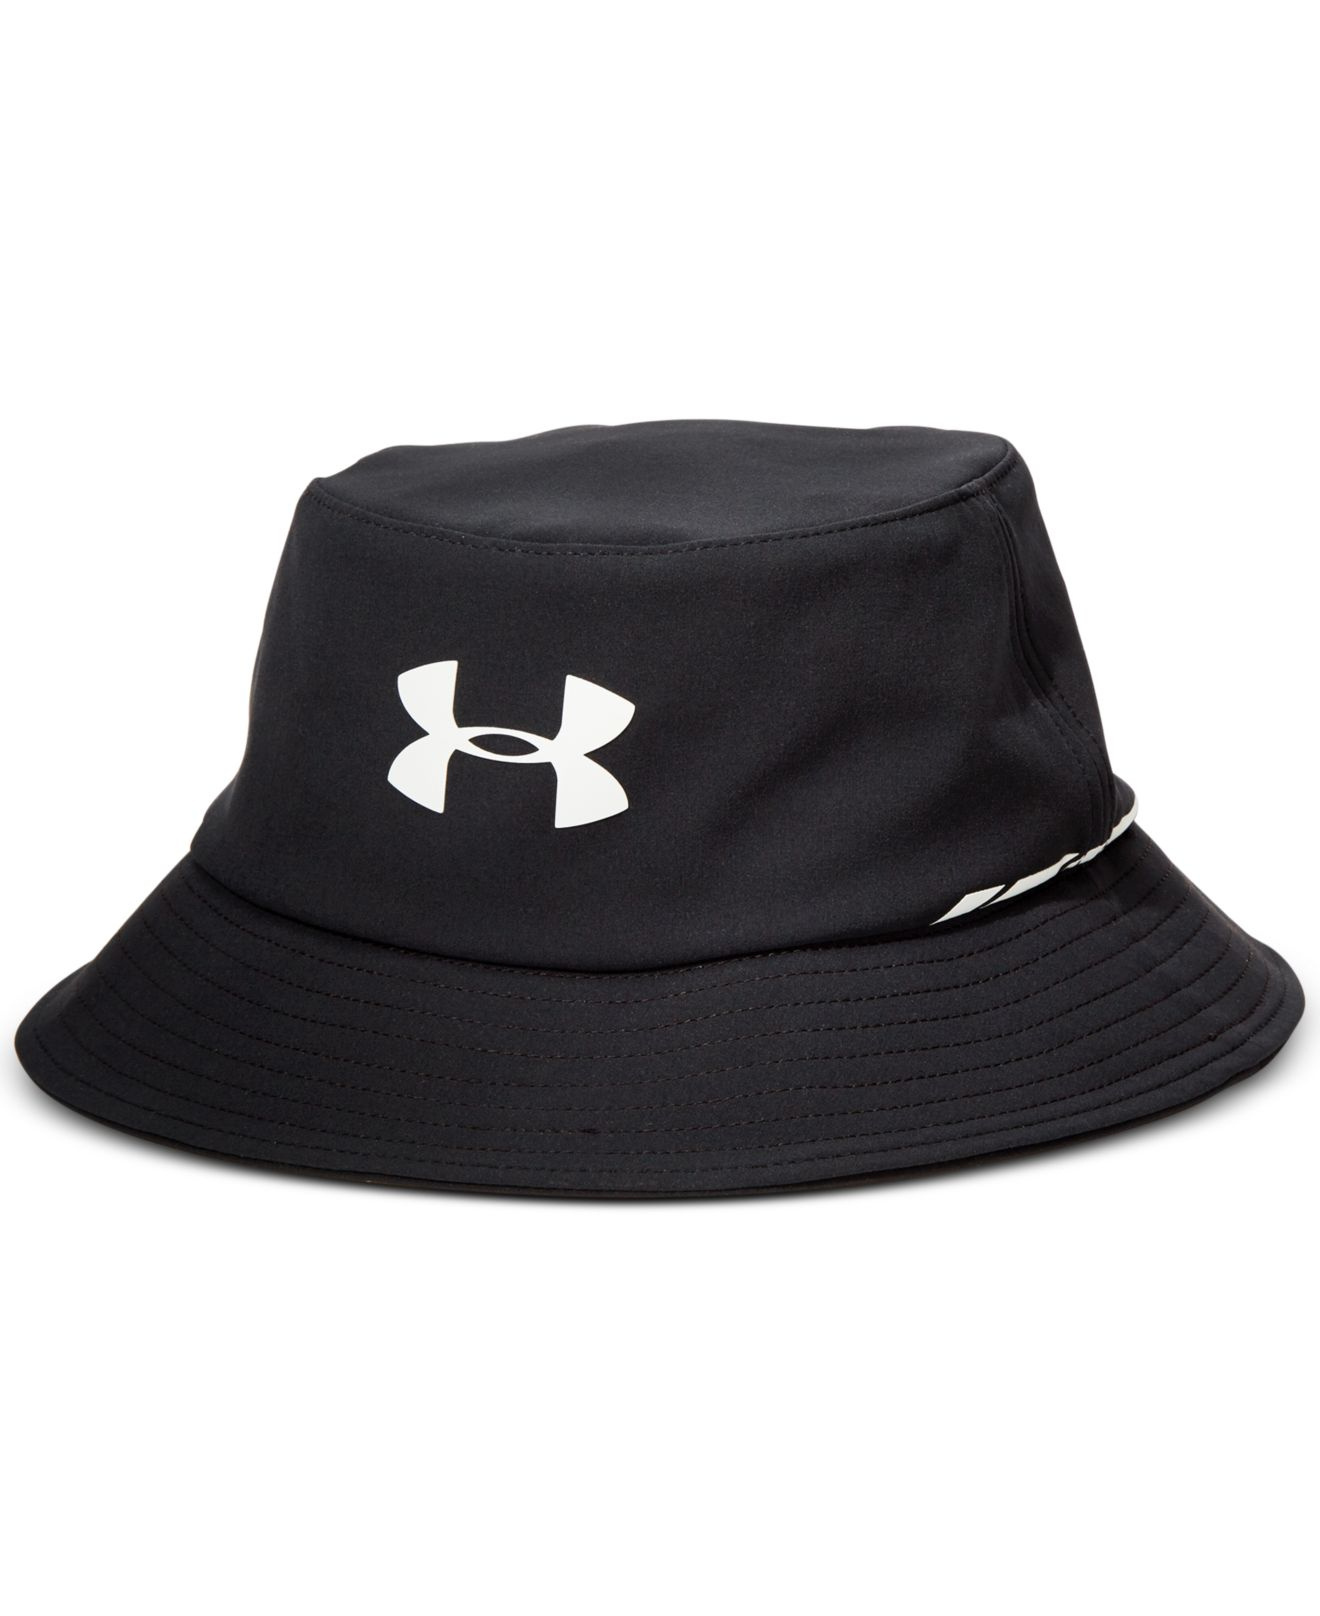 657b48da0d7 Lyst - Under Armour Elements Water-resistant Golf Bucket Hat in ...